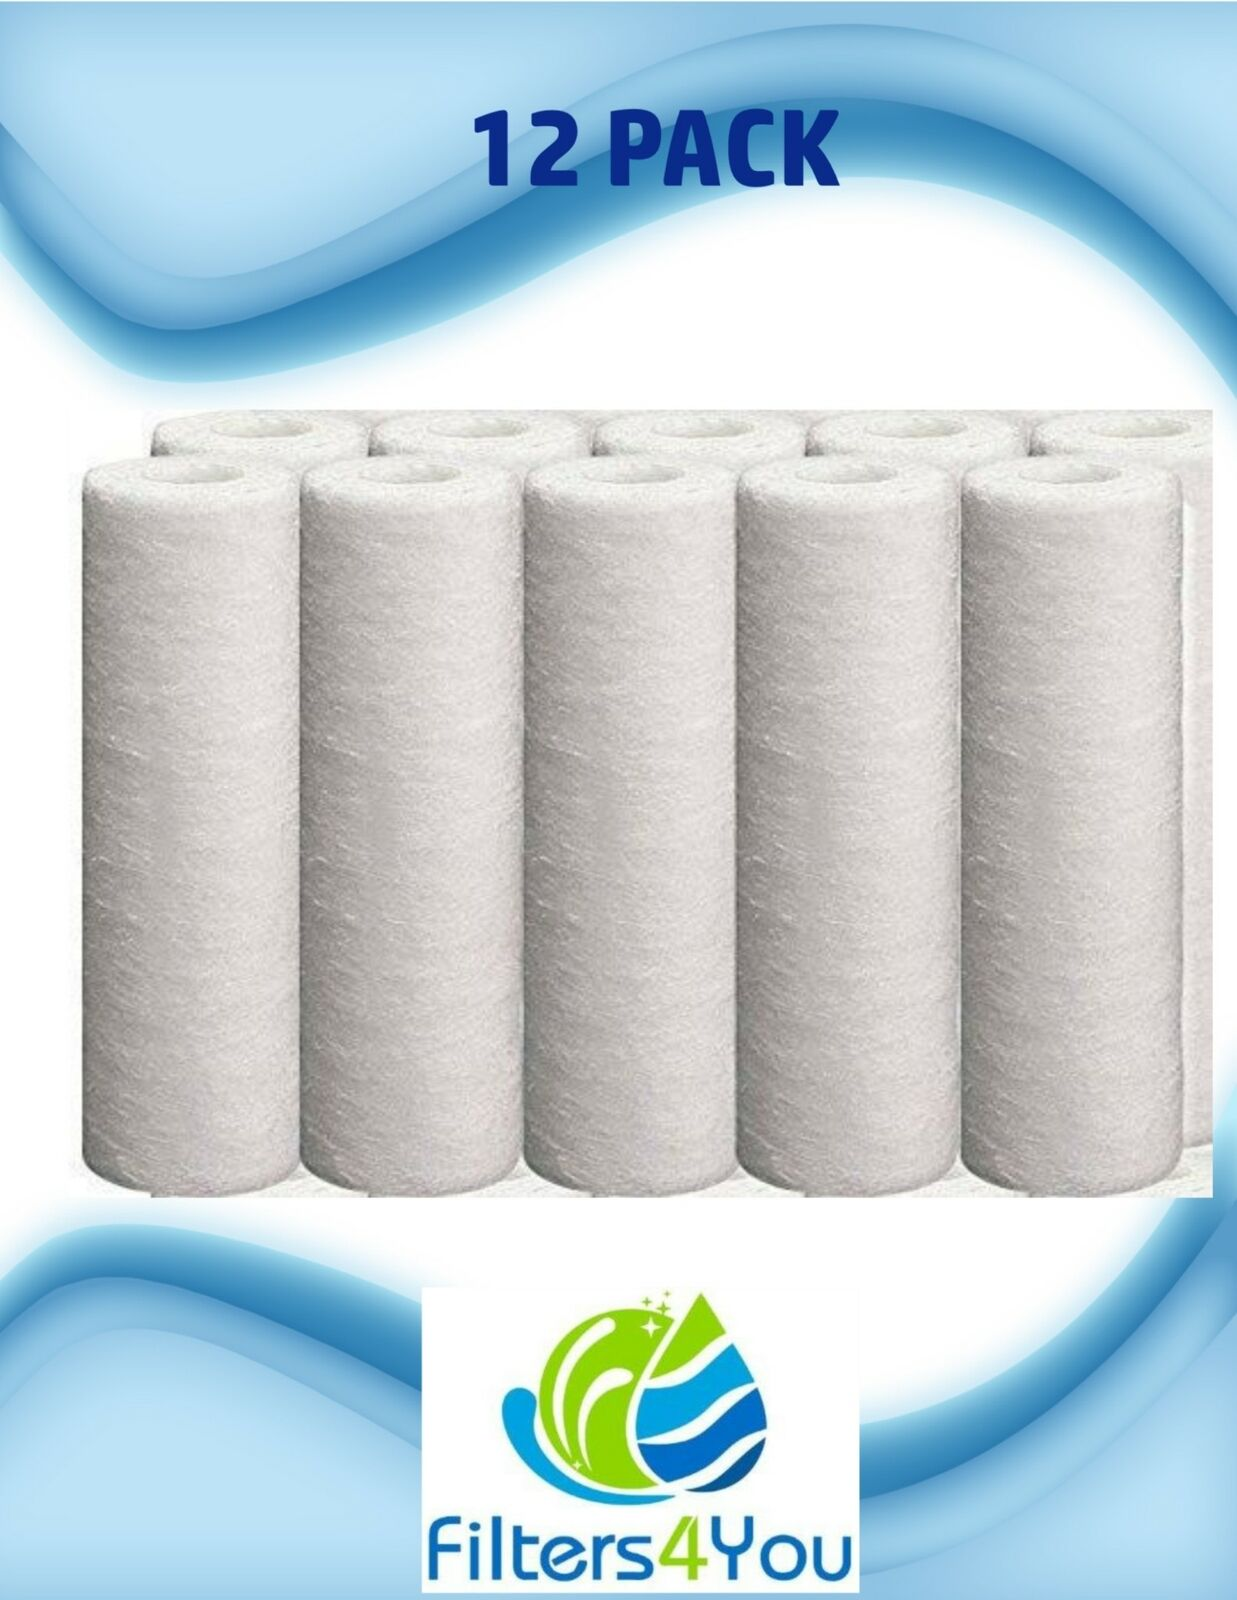 Fits Culligan S1A Whole House Standard Water Filter 16,000 Gallons 12-Pack